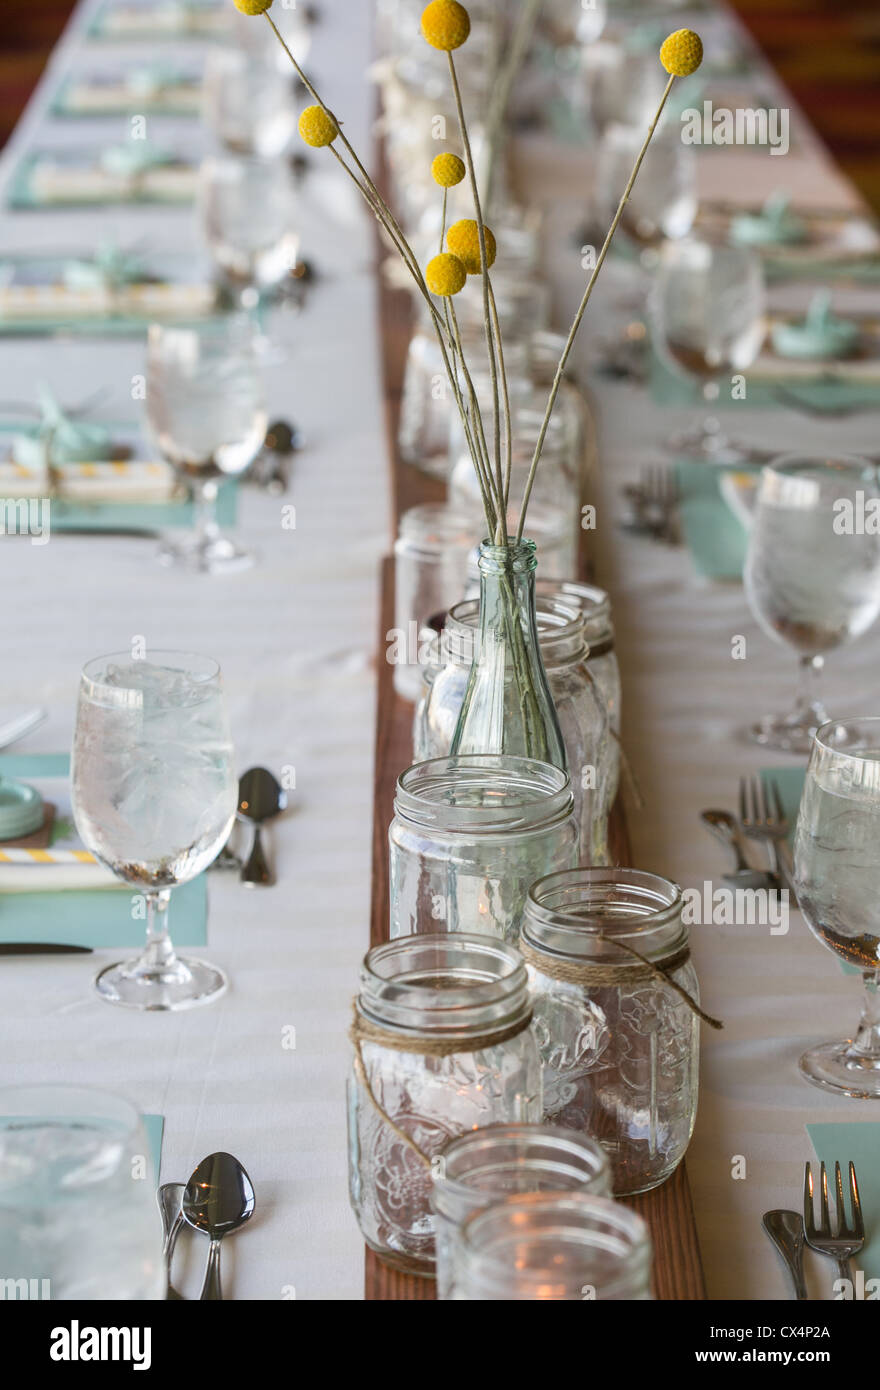 Rustic Table Setting For A Wedding Featuring Mason Jars